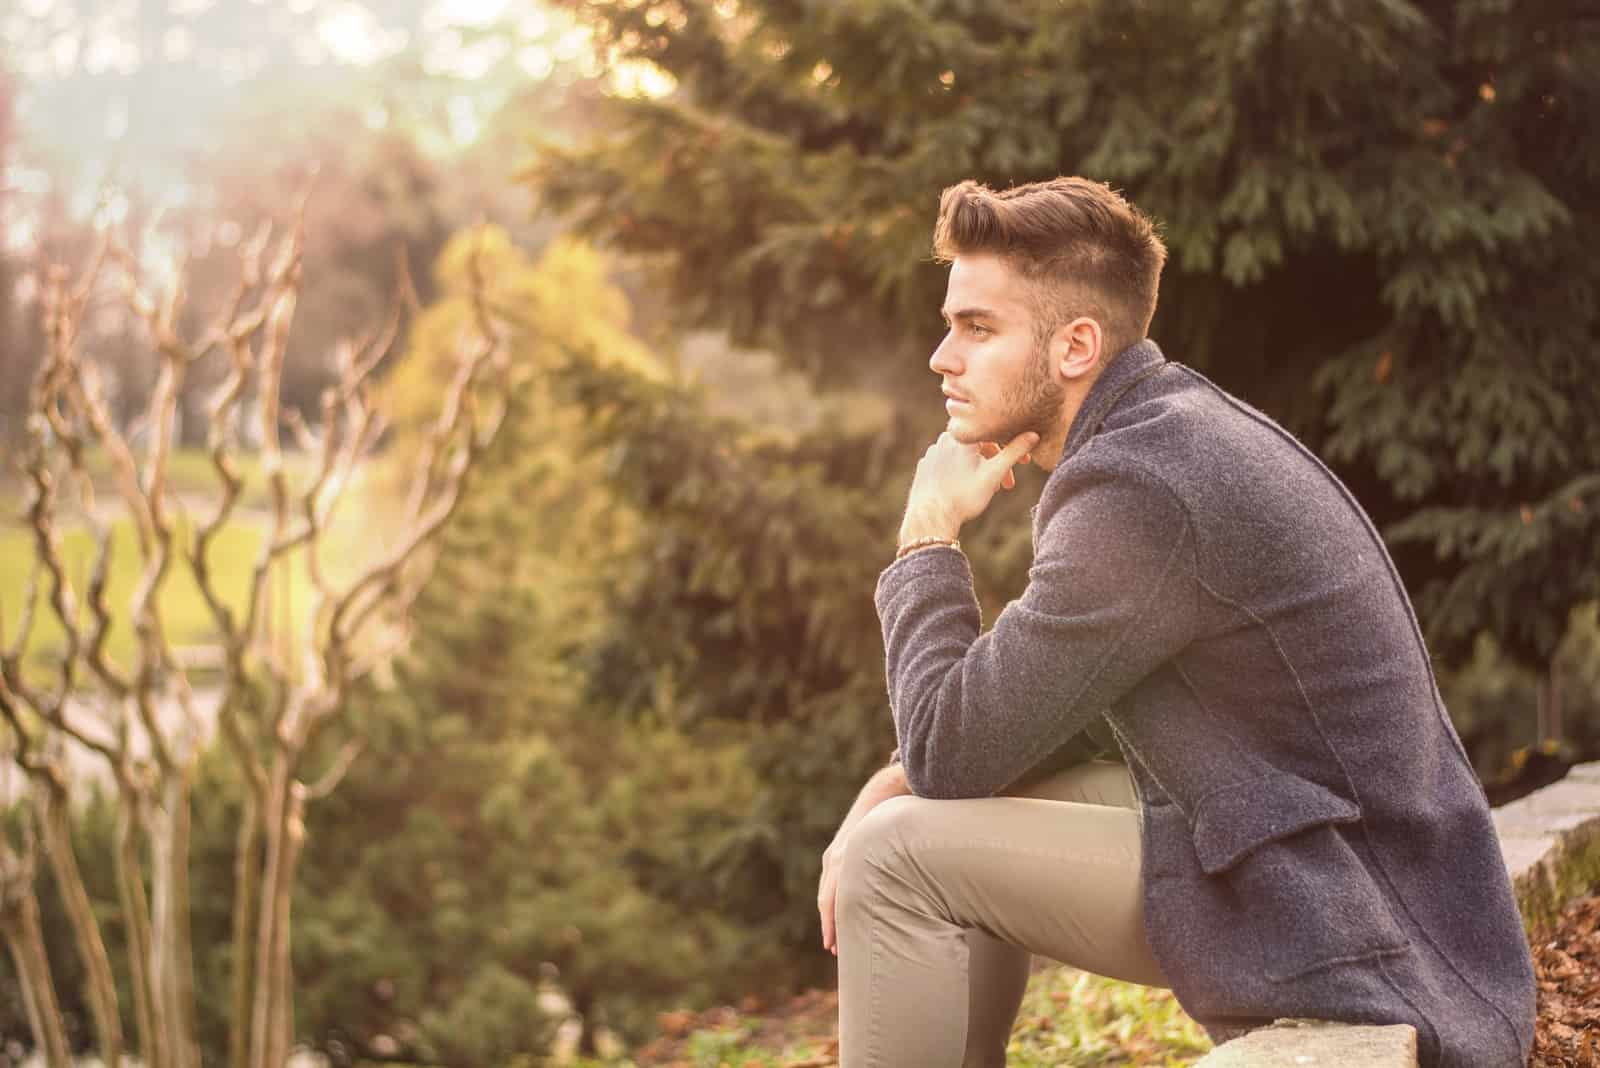 pensive man in gray jacket sitting outdoor